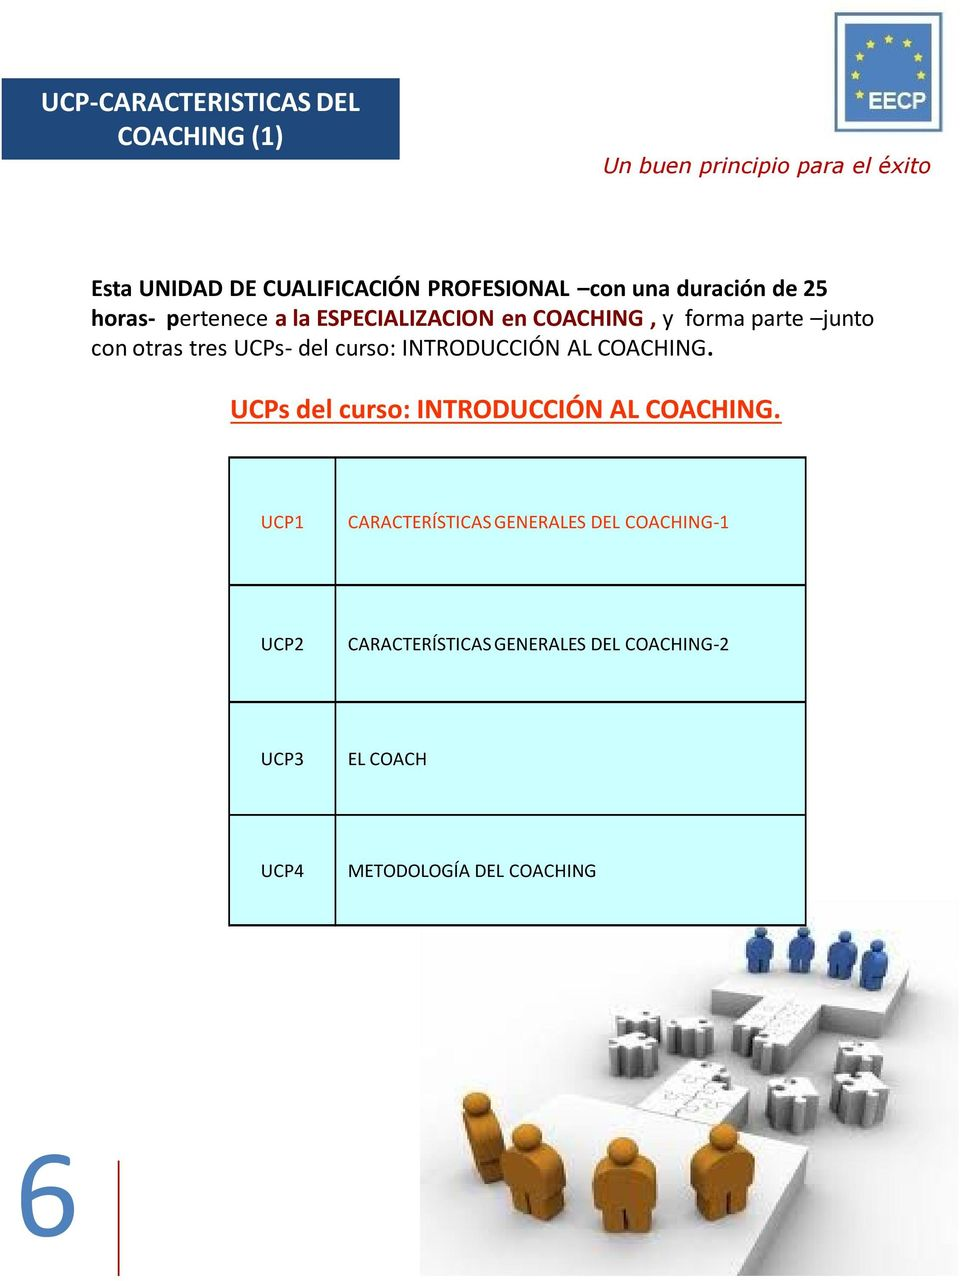 INTRODUCCIÓN AL COACHING. UCPs del curso: INTRODUCCIÓN AL COACHING.